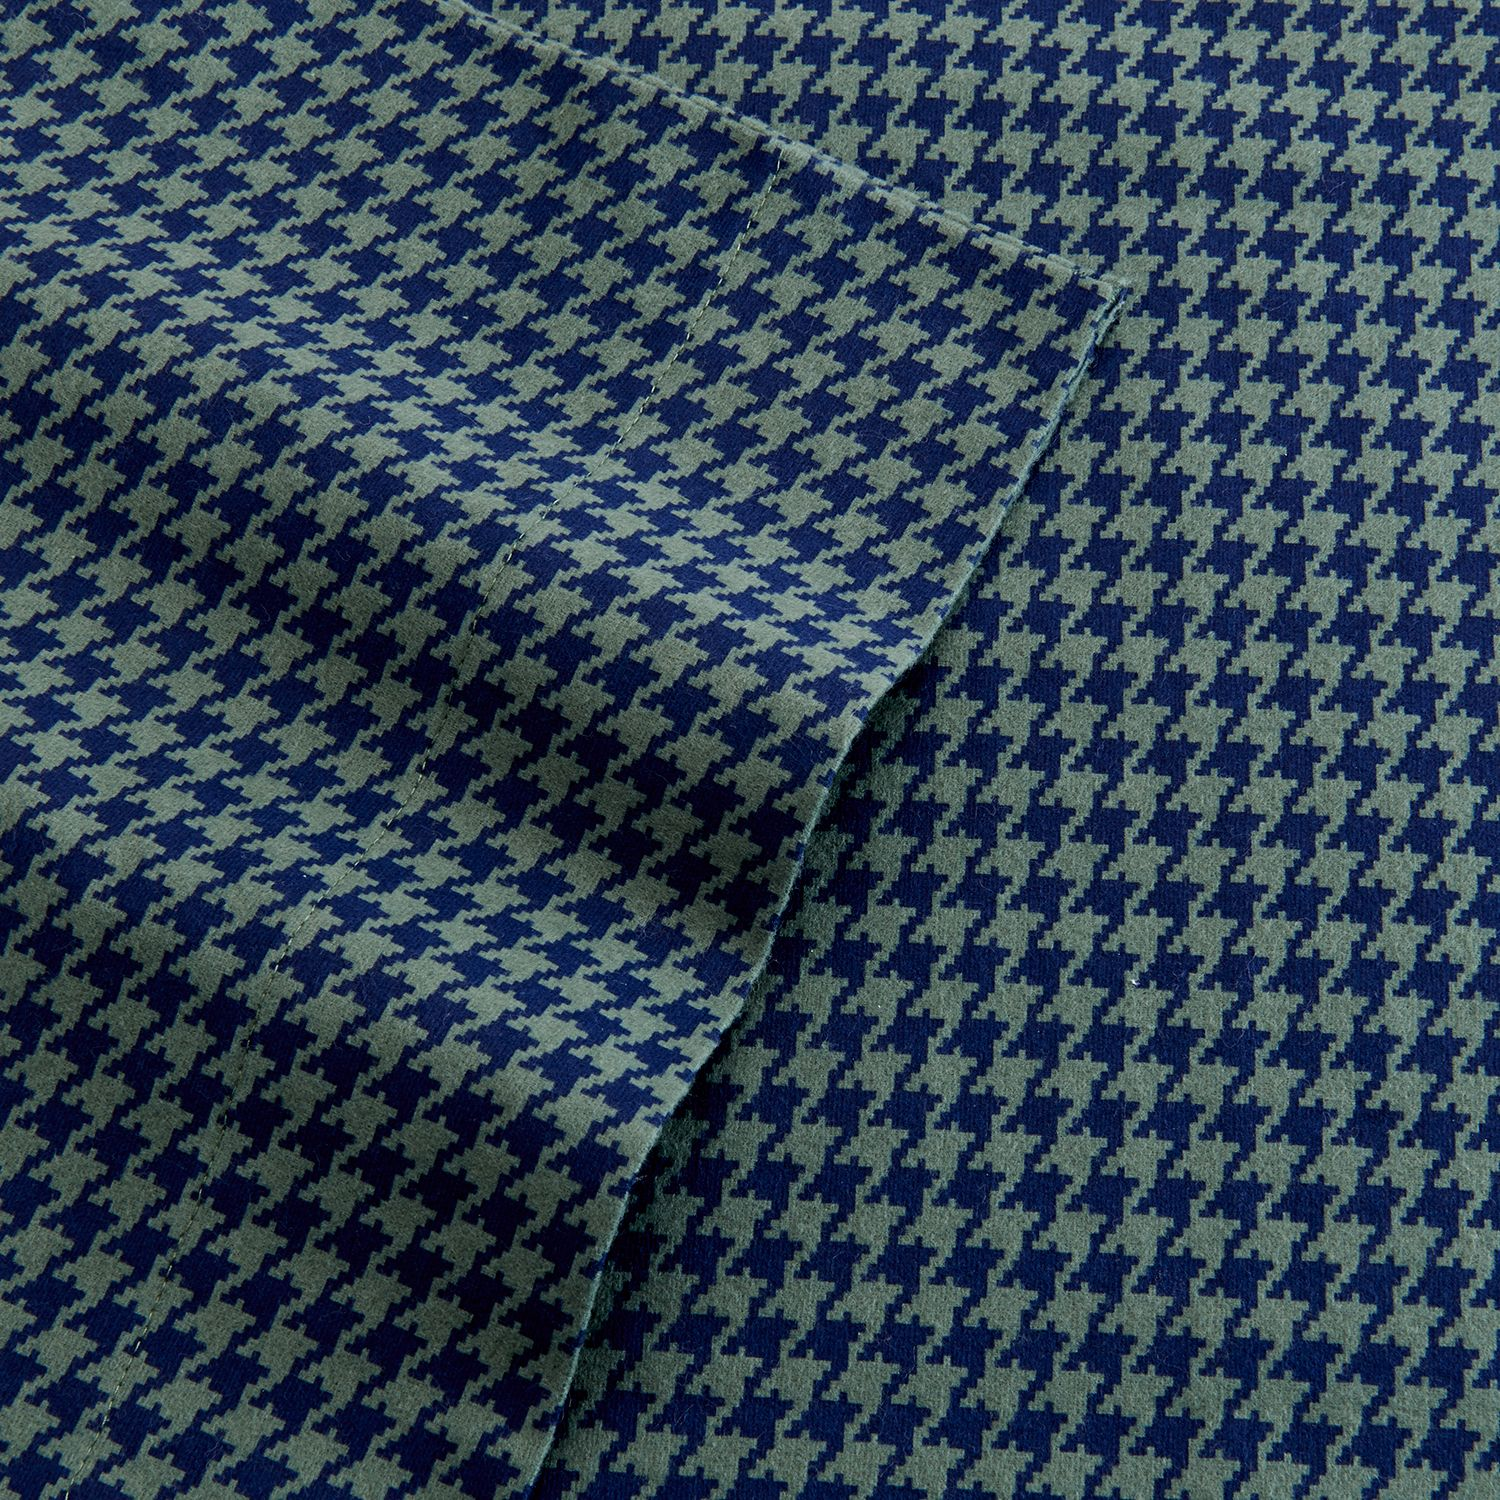 Home Classics Houndstooth Flannel Sheet Set Price Saraithc55y